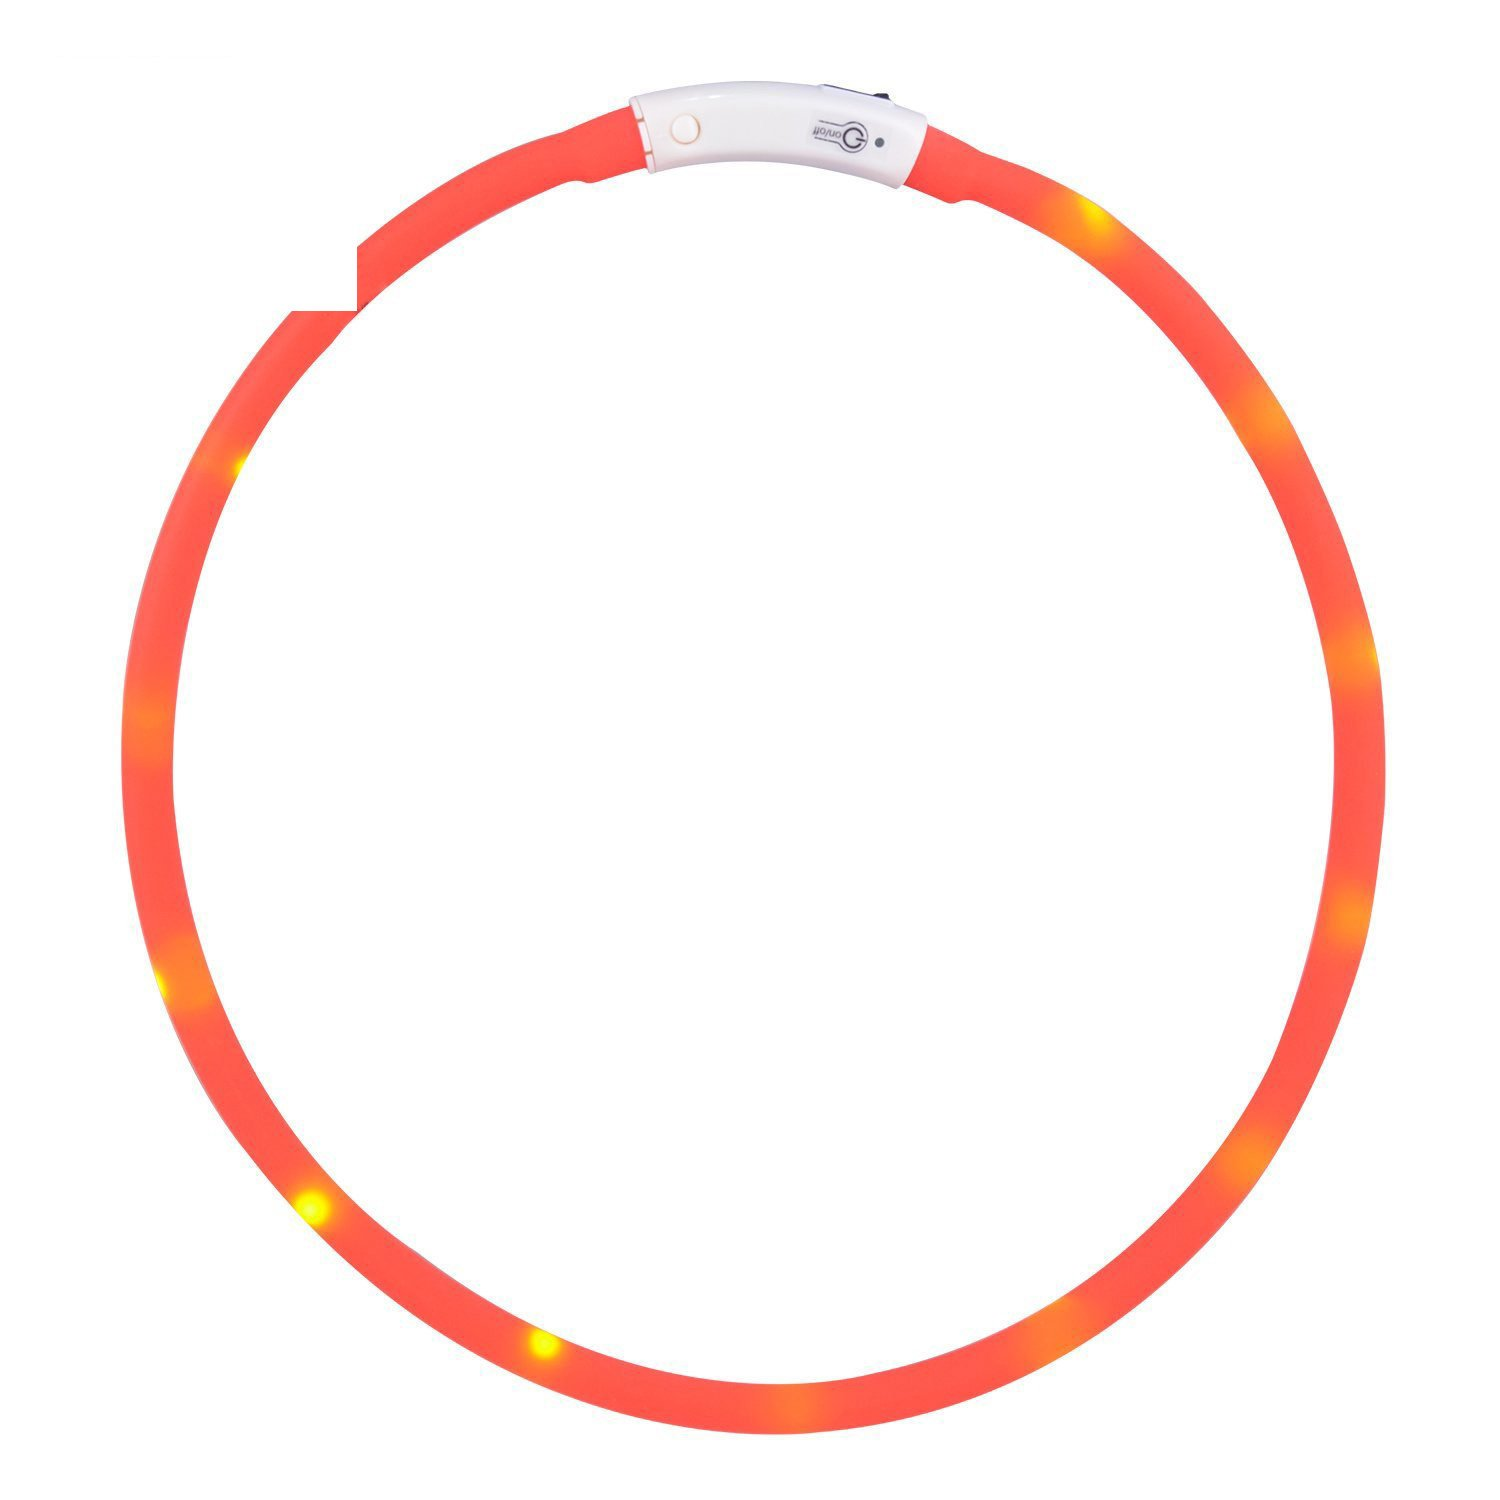 orange Perfect Home USB Rechargeable LED Luminous Dog Collar Multi-color Optional Waterproof Adjustable Flashing Light pet Safety Collar 1 Durable (color   orange)